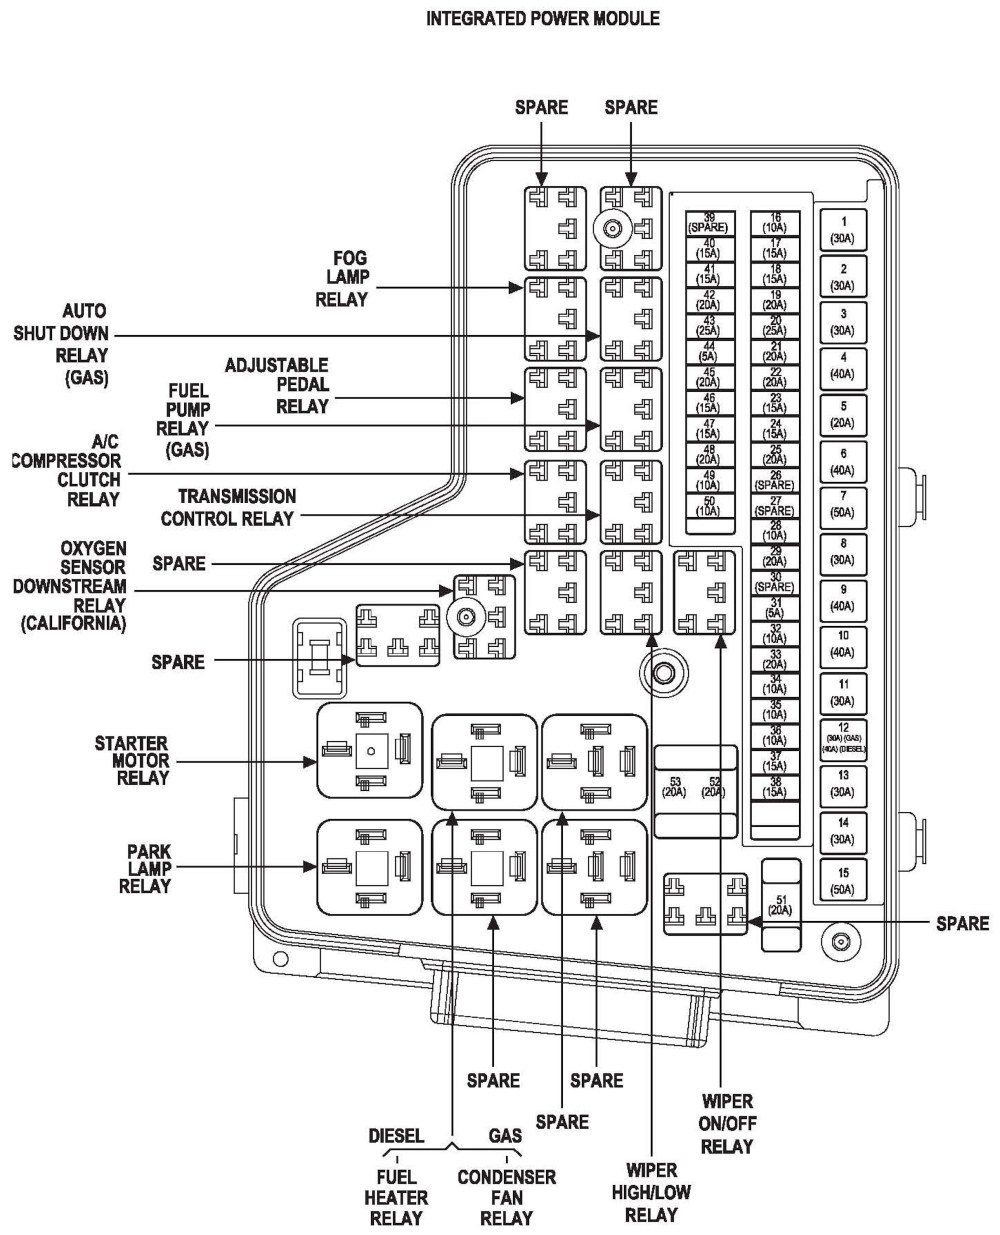 medium resolution of 2013 charger fuse diagram wiring diagram paper 2013 dodge ram fuse box diagram wiring diagram paper